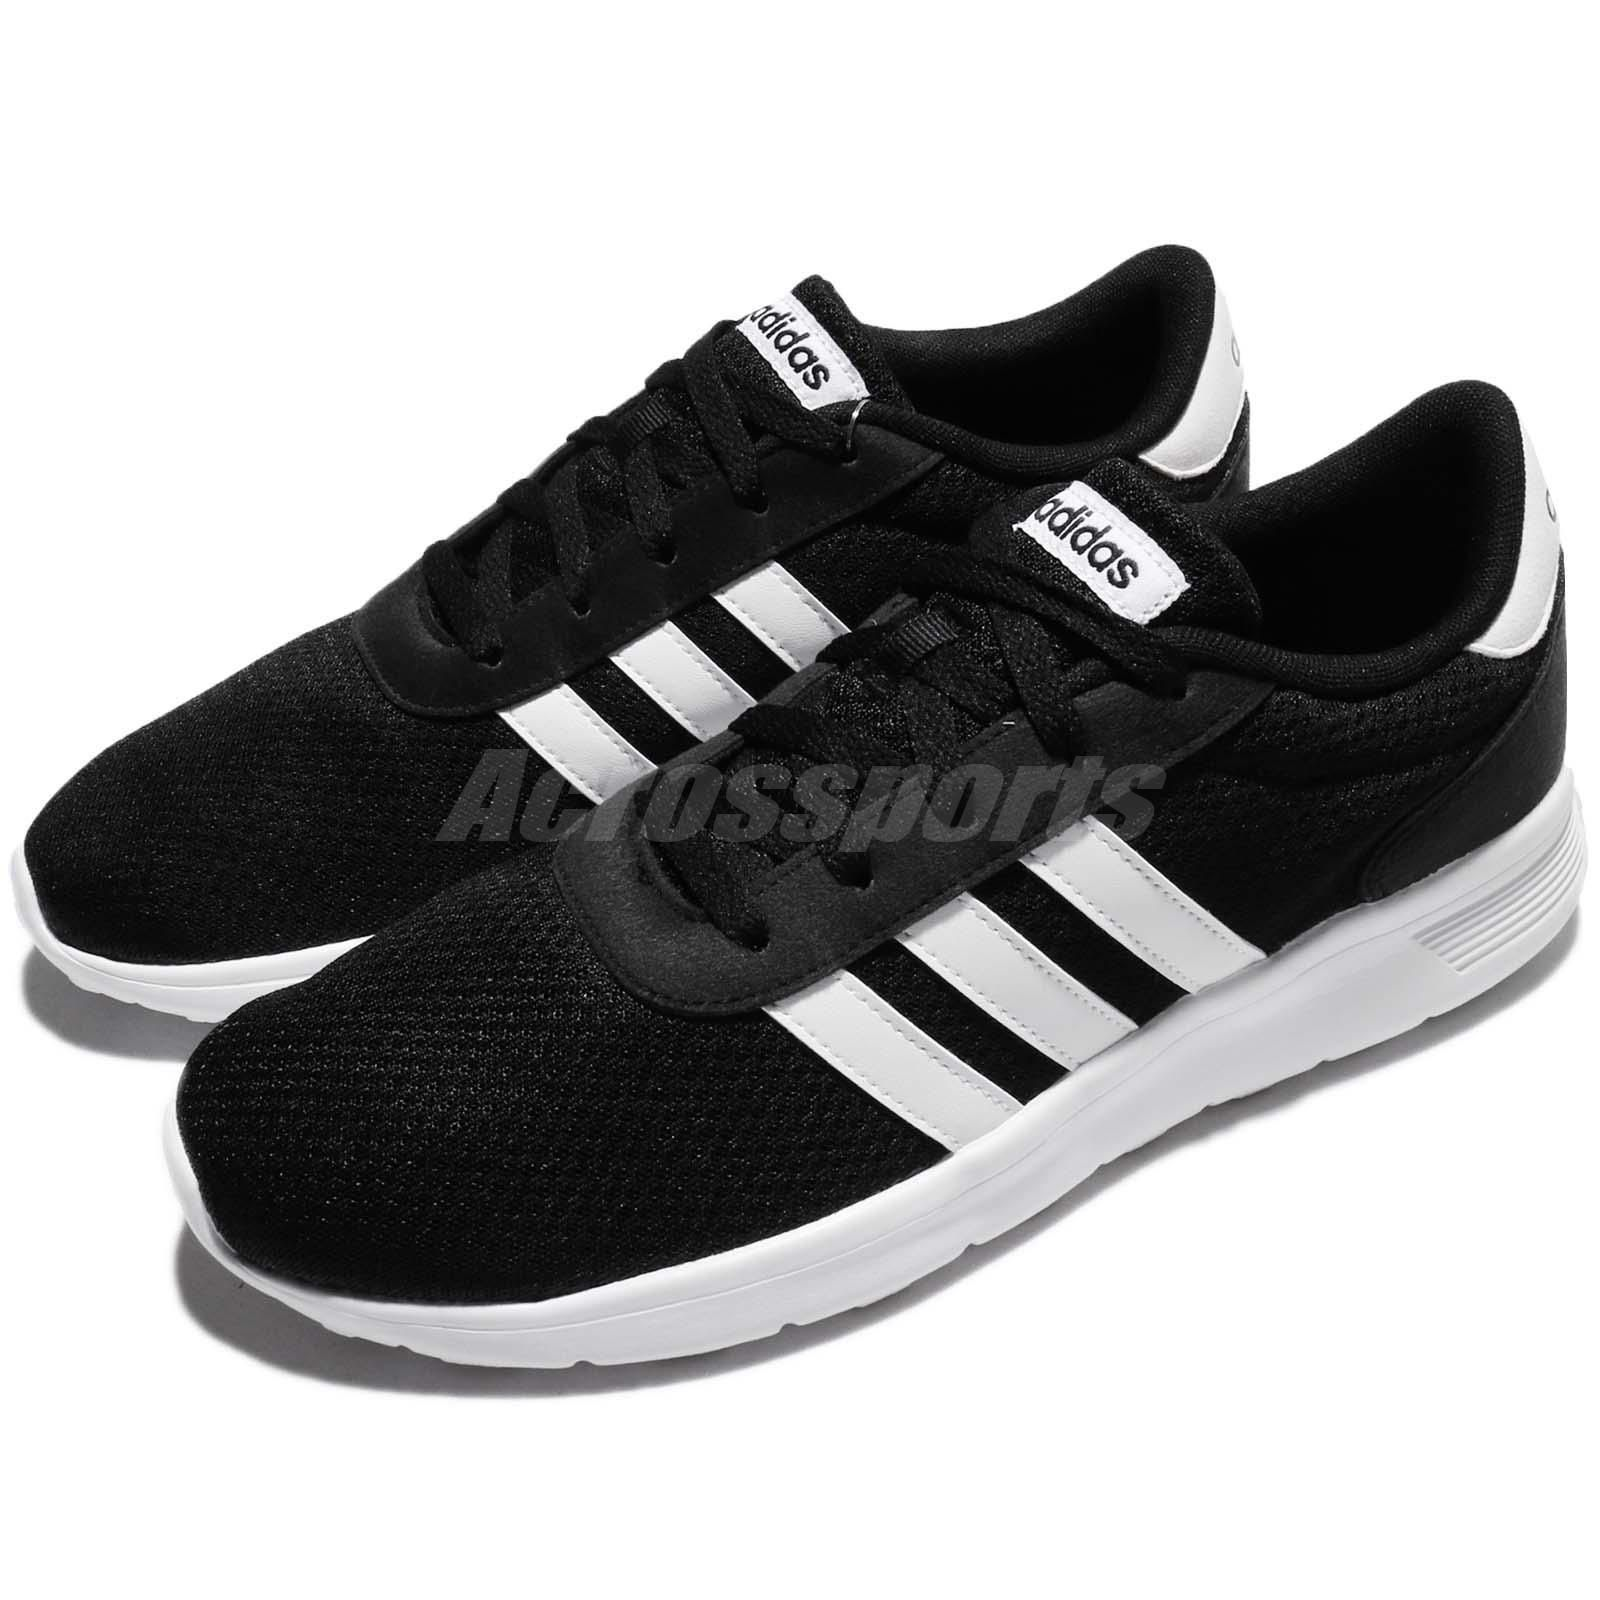 f93683a50 ... shop adidas neo lite racer black white men running shoes sneakers  bb9774 974ea a2b13